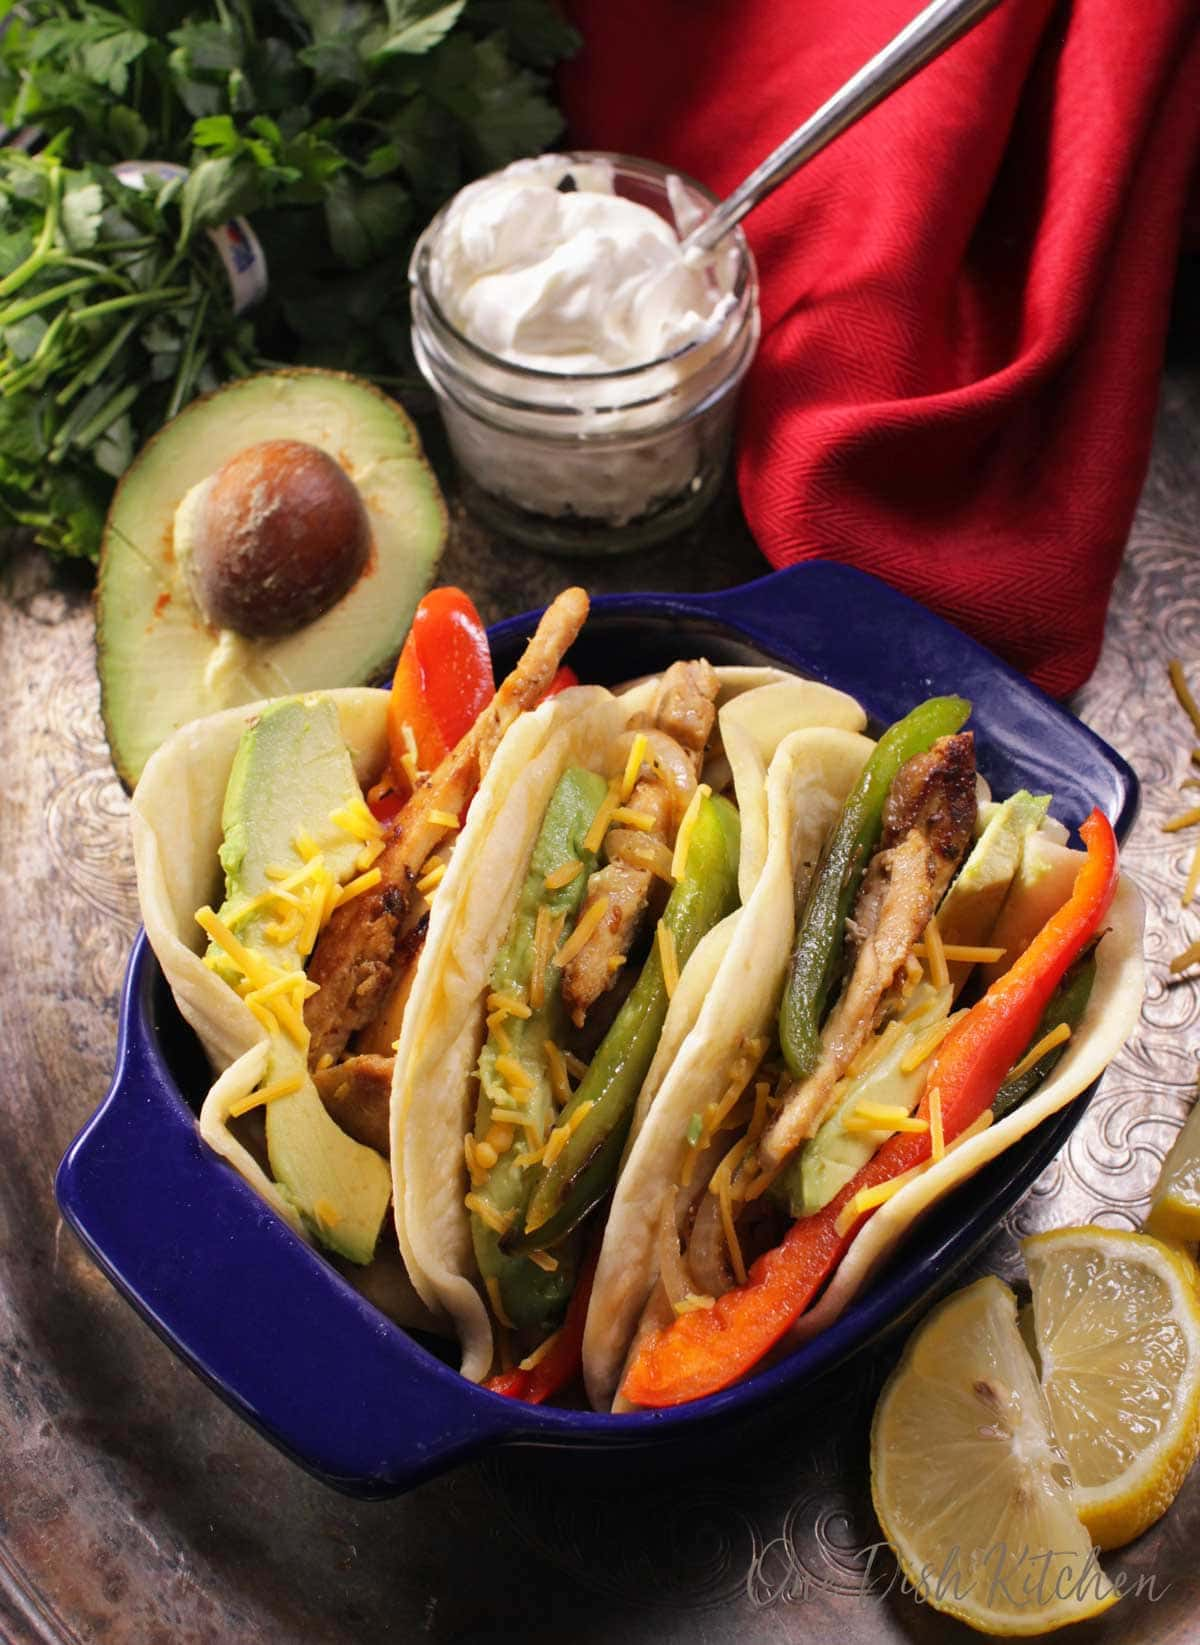 A small baking dish filled with three chicken fajitas filled with avocado slices, red and green bell peppers, and shredded cheese next to a half of an avocado and a small jar of sour cream.